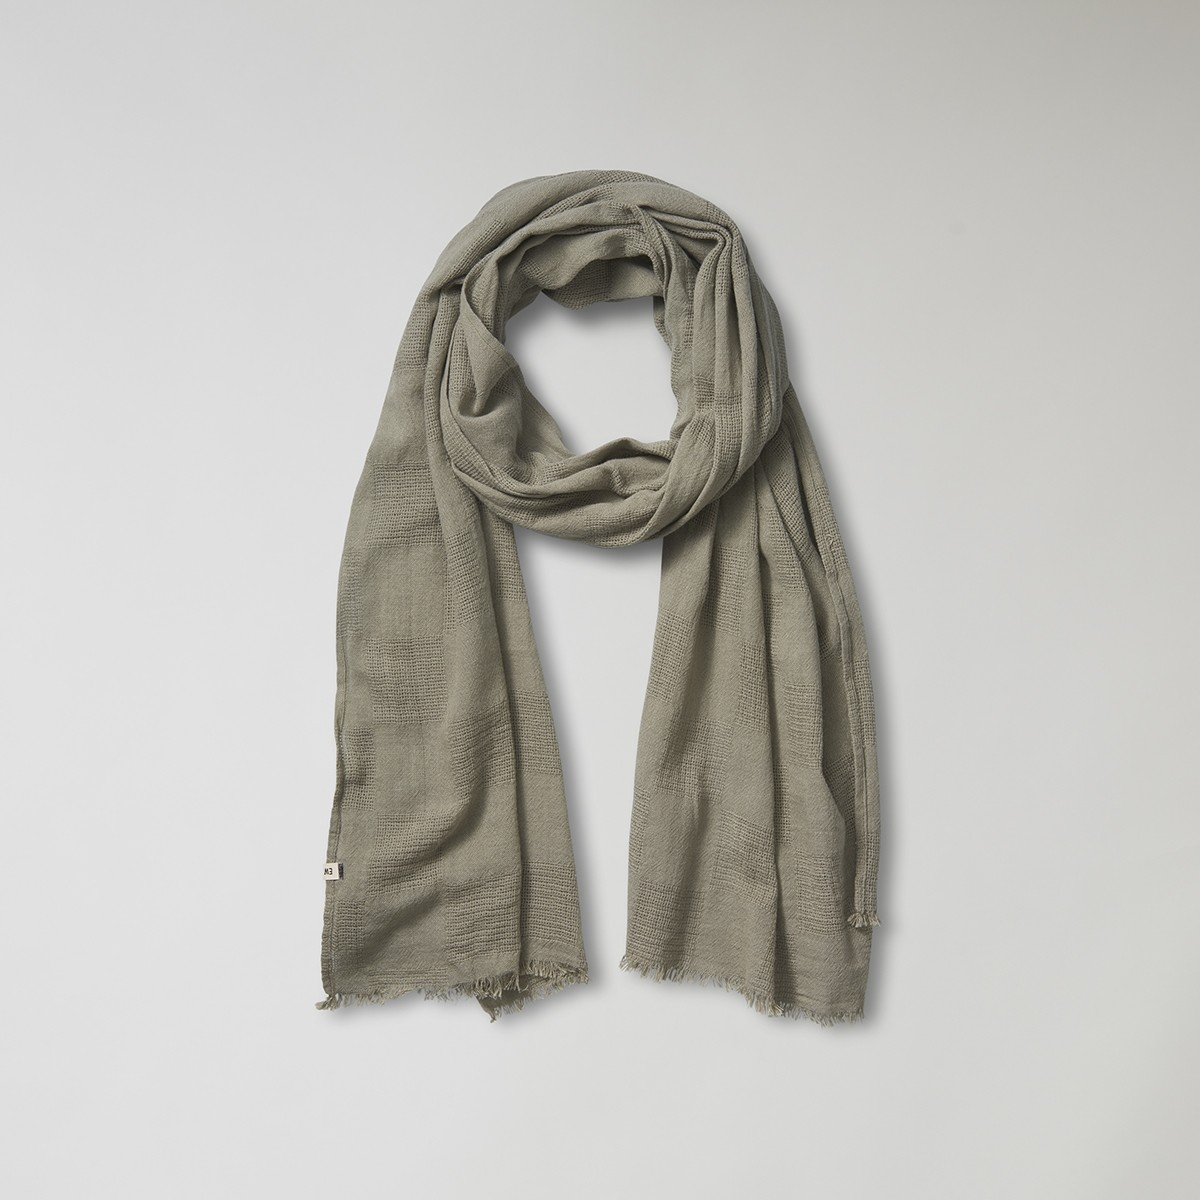 Keane Grön Scarf | East West | Brothers.se